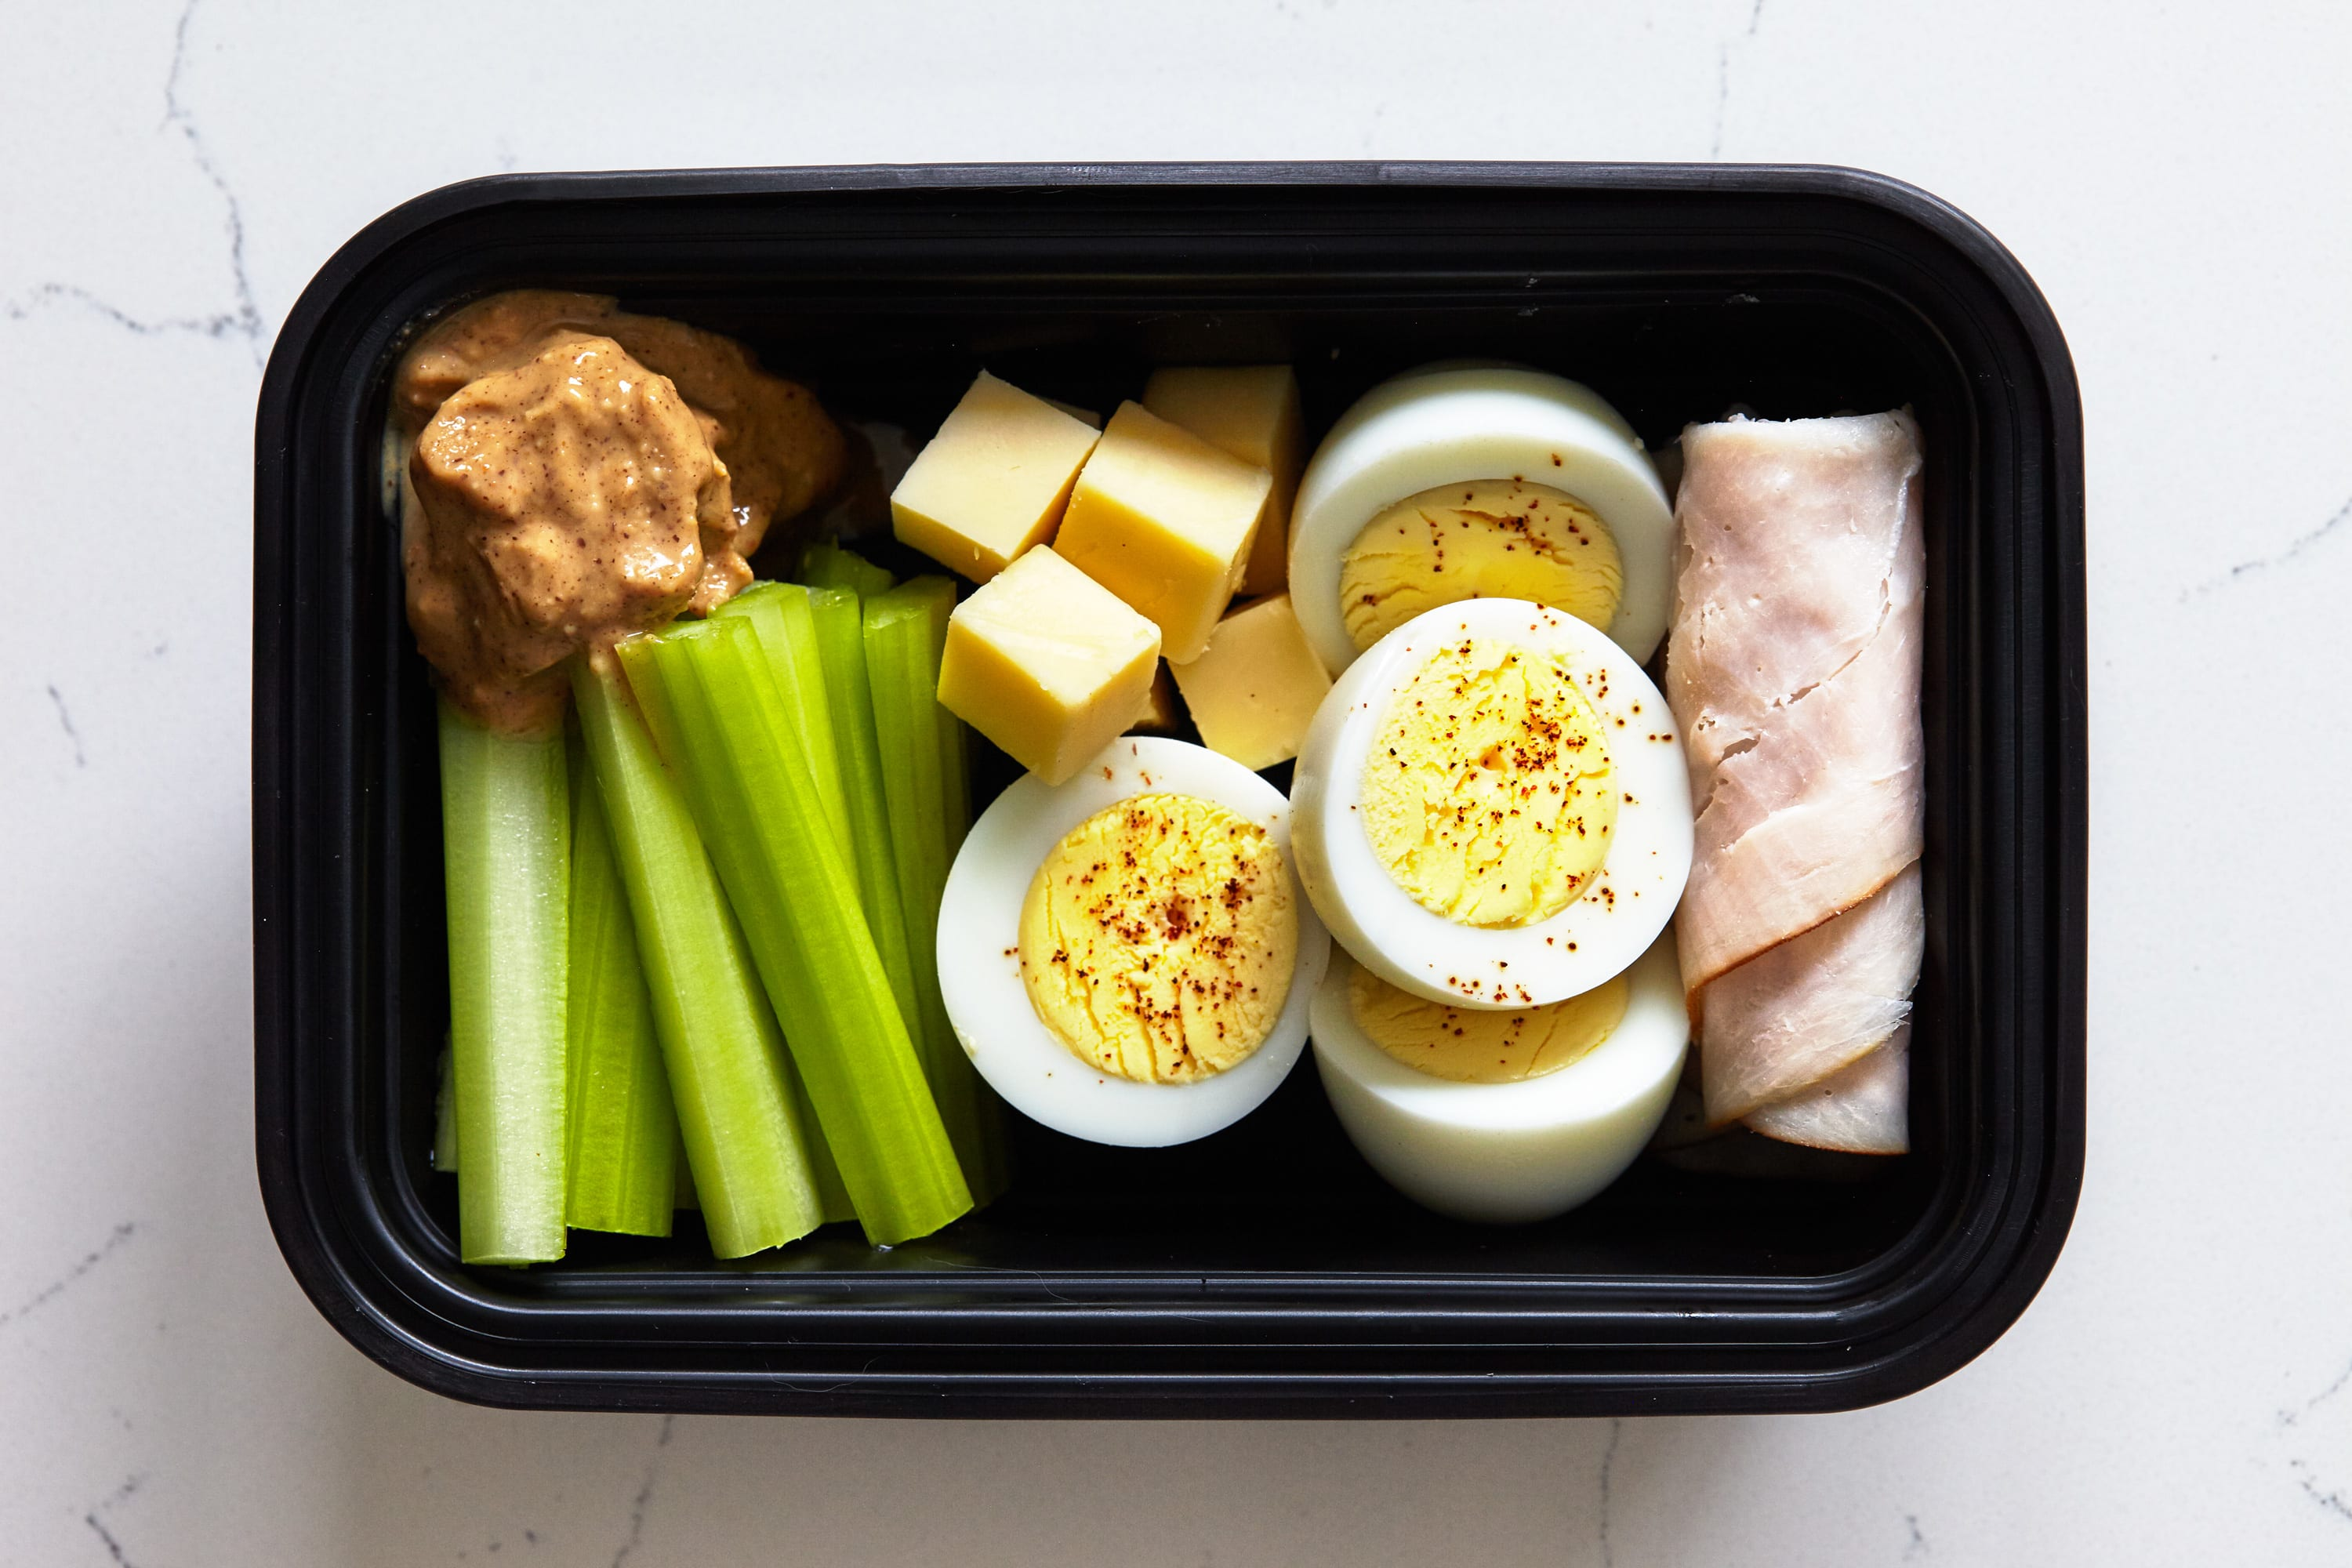 Simple No Cook Snacks with Celery, Peanut Butter, Eggs, turkey